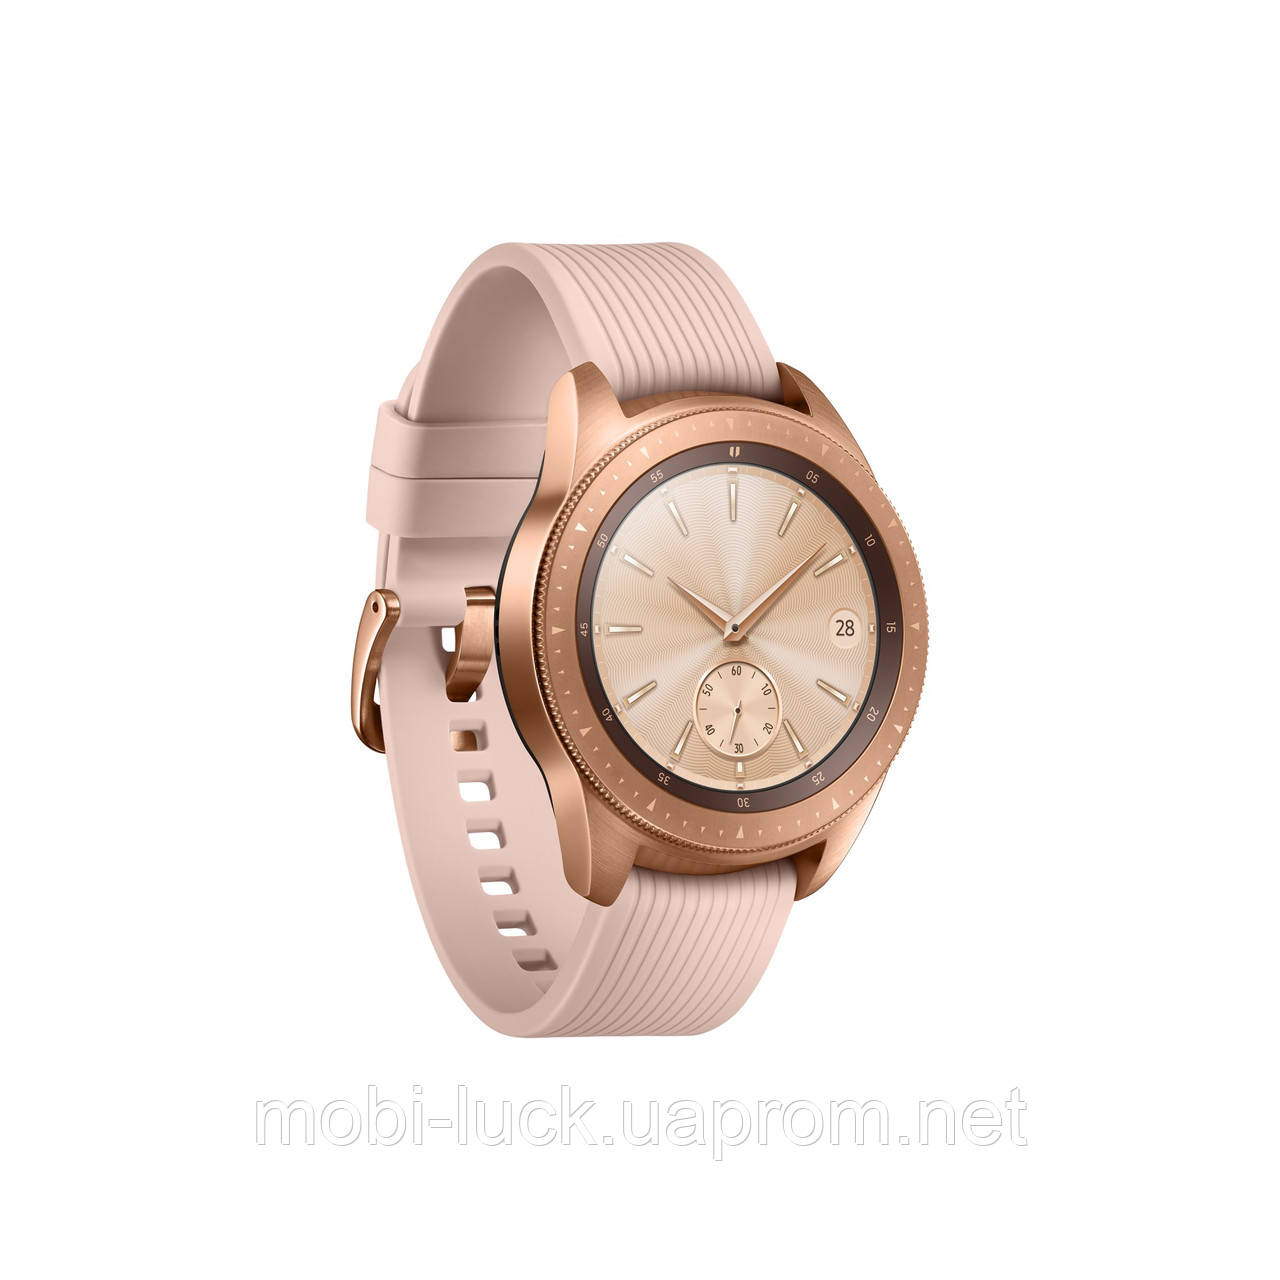 Смарт-годинник Samsung Galaxy Watch 42mm LTE Rose Gold (SM-R810NZDA)